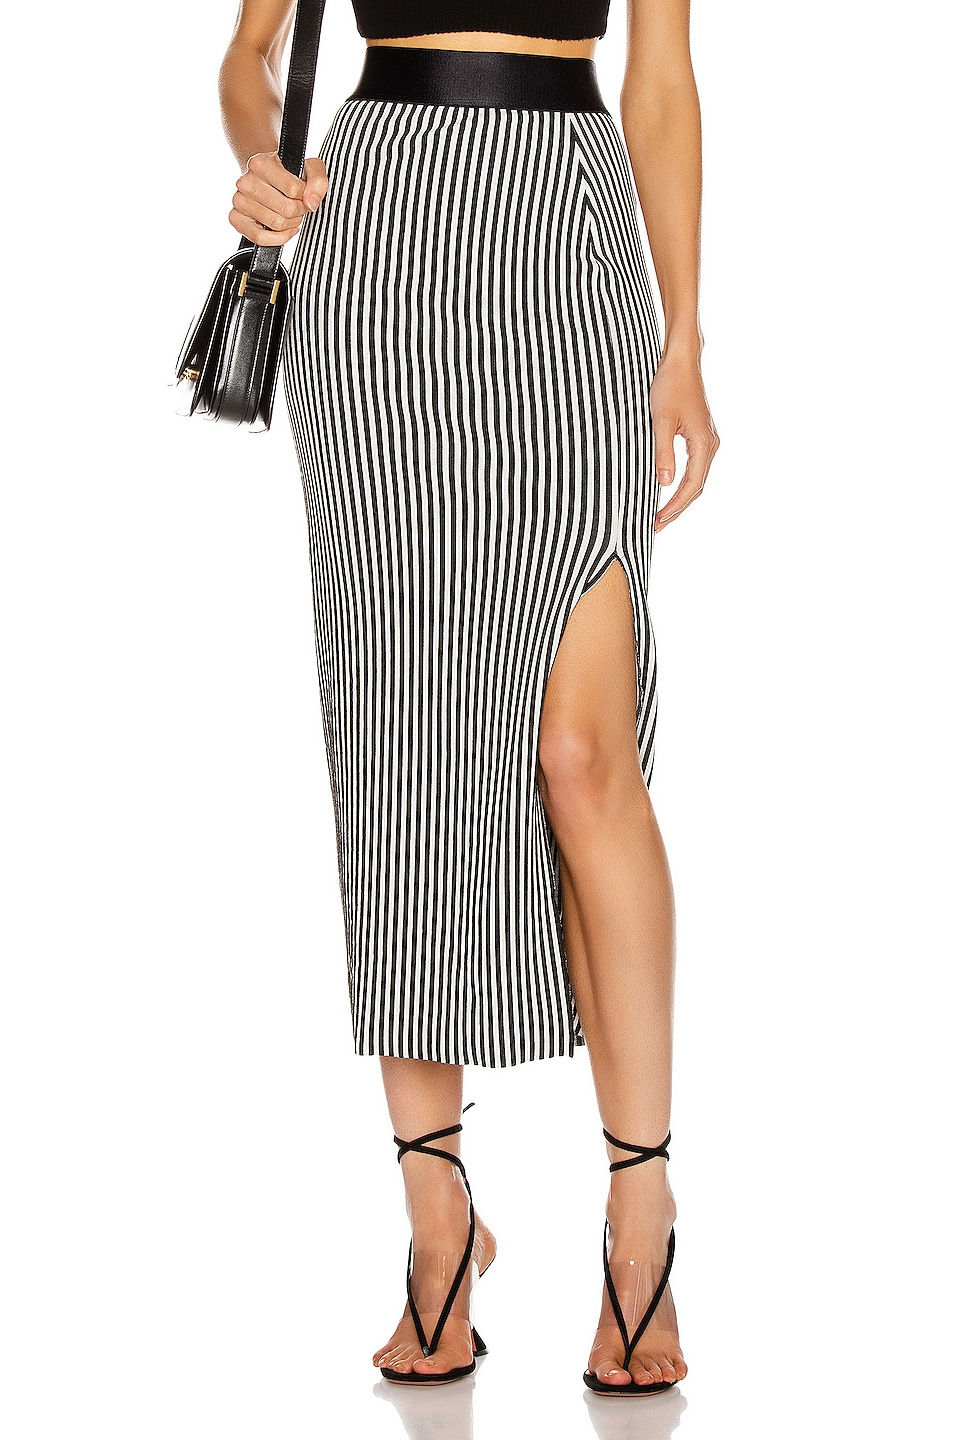 Image 1 of The Range Bound Striped Banded Skirt in White & Black